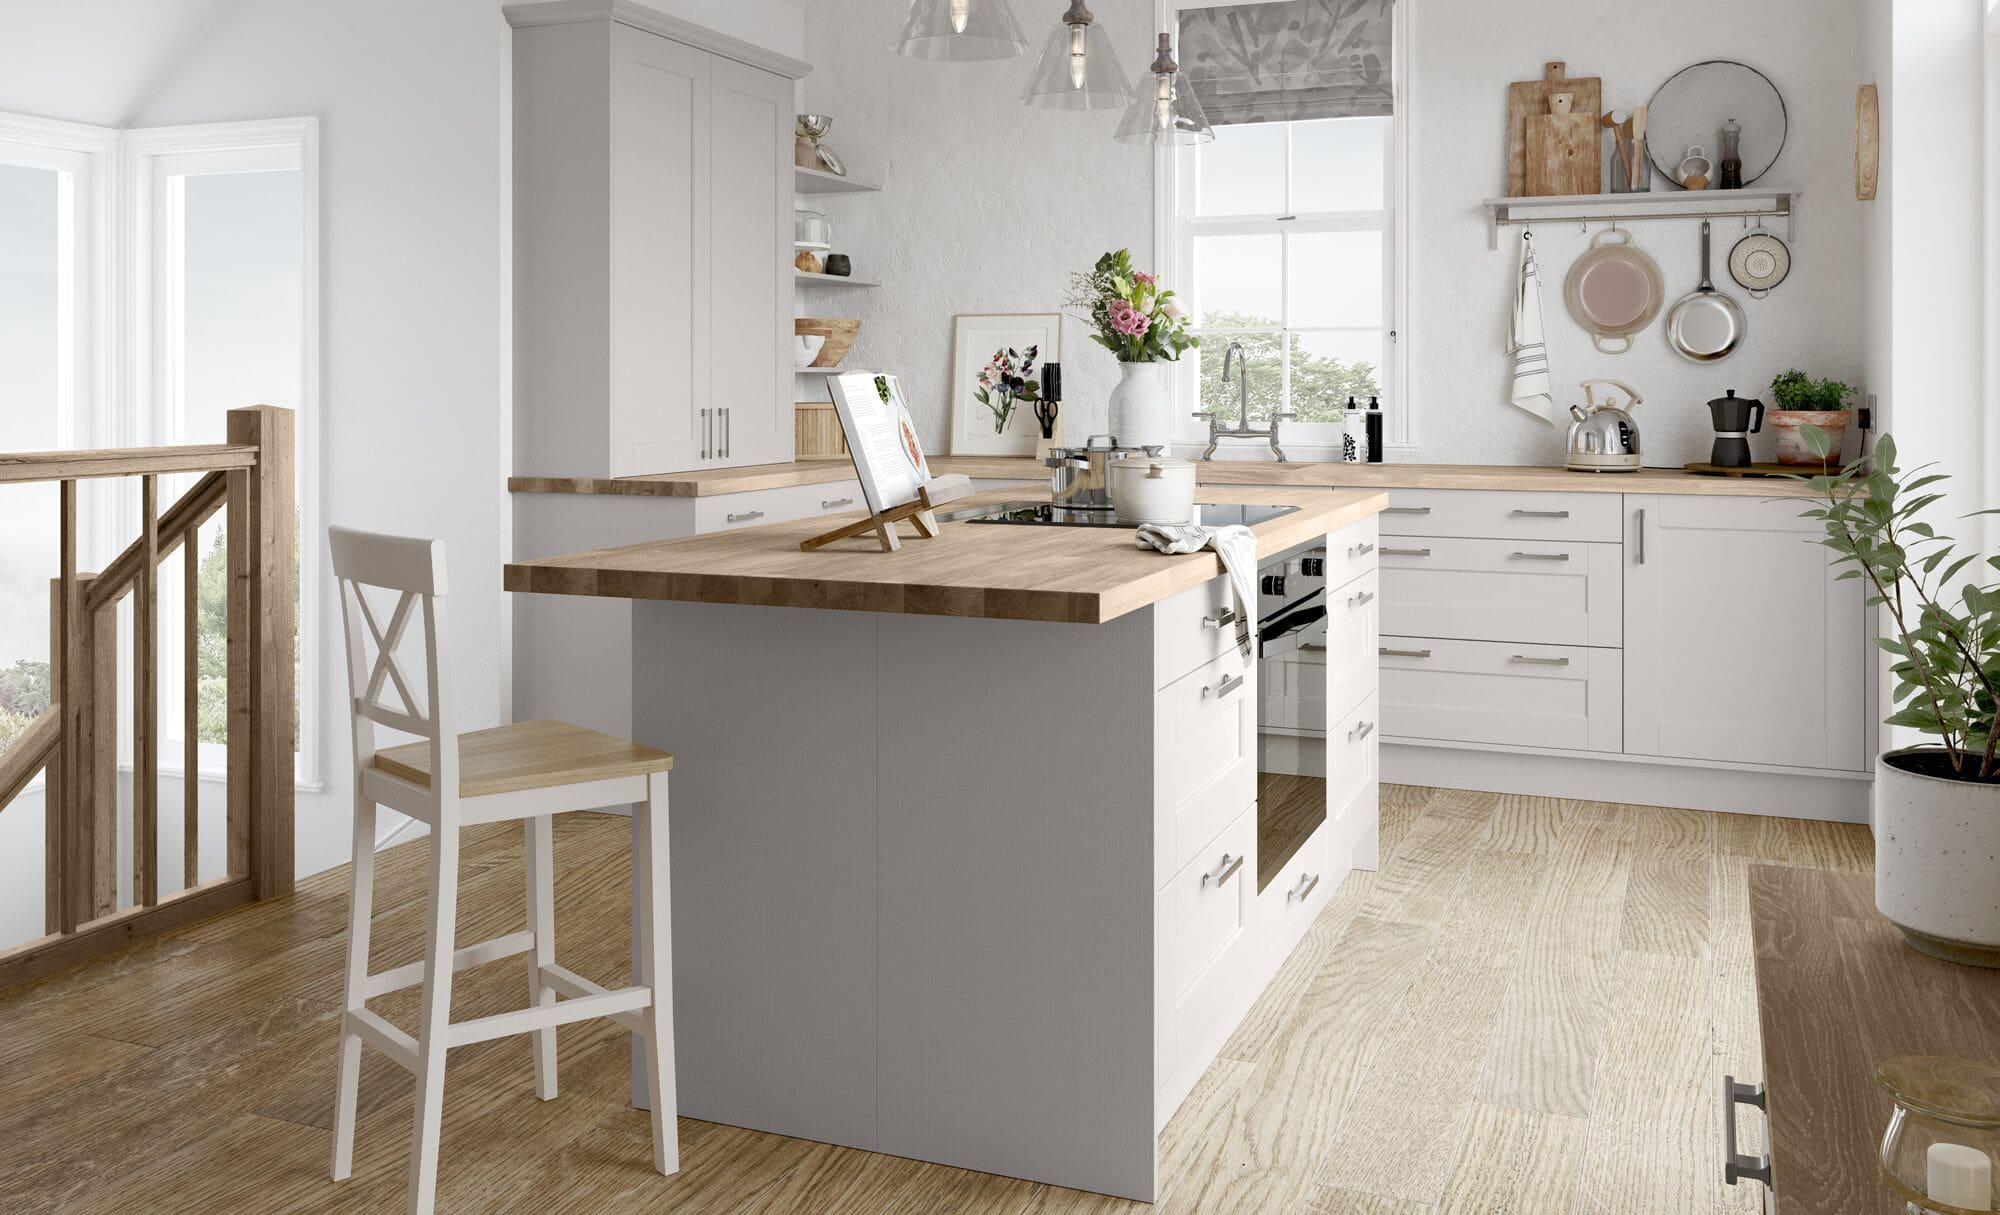 Classic Country Style Kensington Cashmere Kitchen